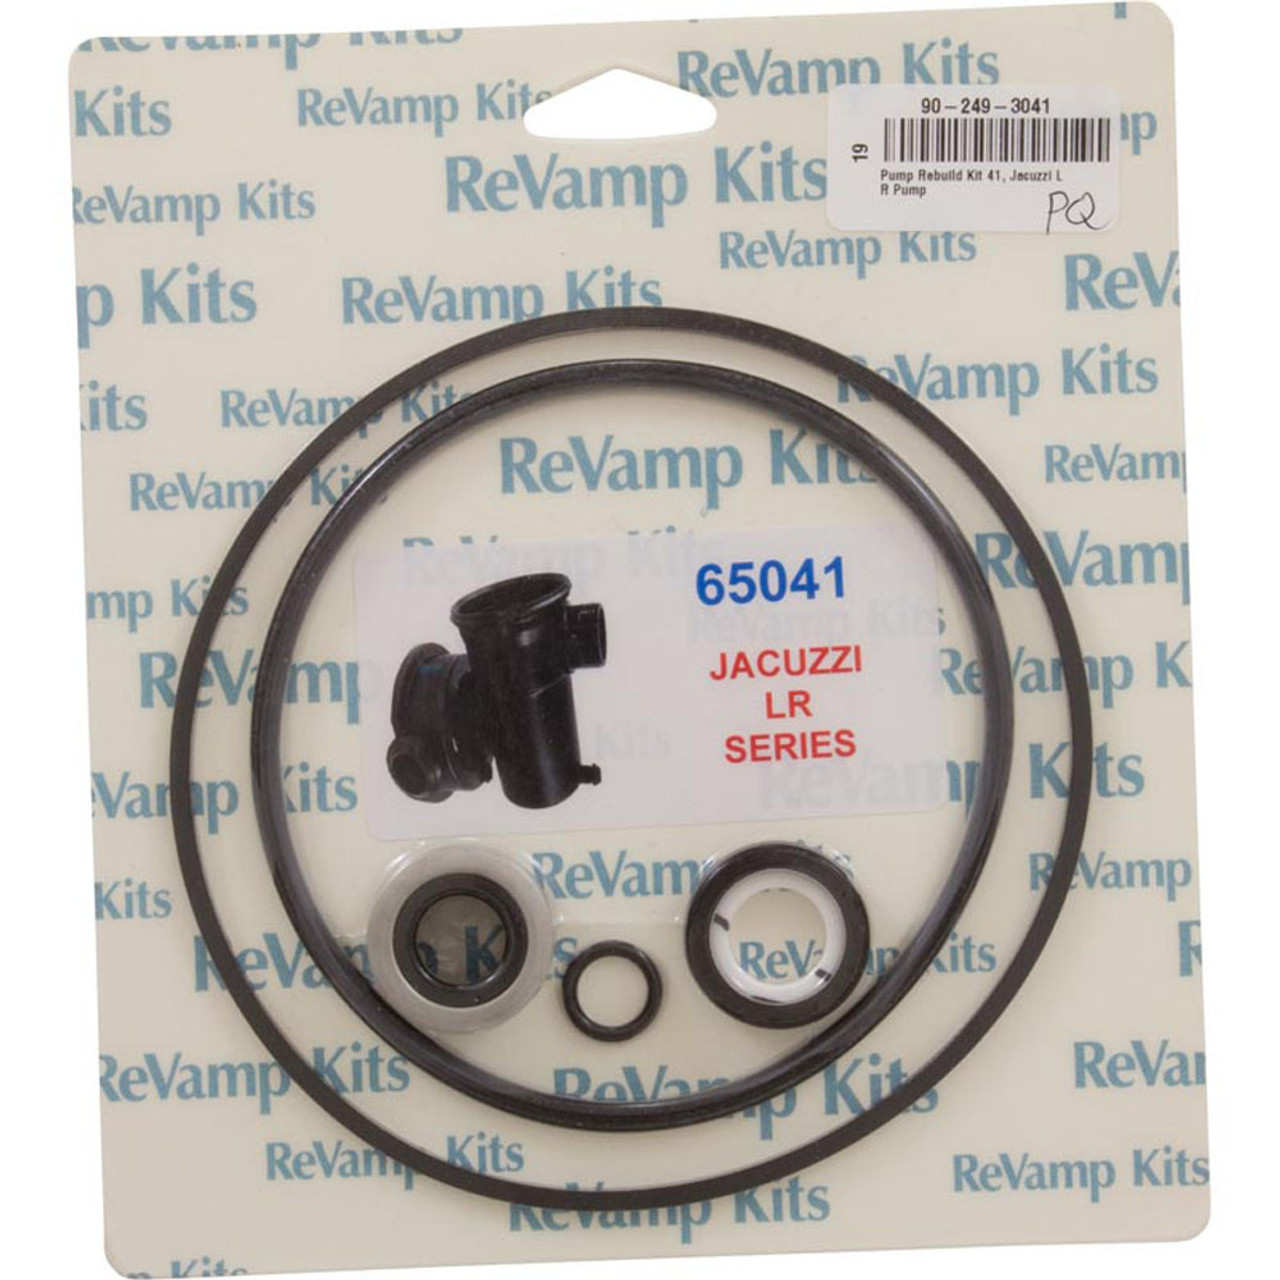 Jacuzzi Pool Pump Seal Kit Pump Rebuild Kit 41 Jacuzzi Lr Pump